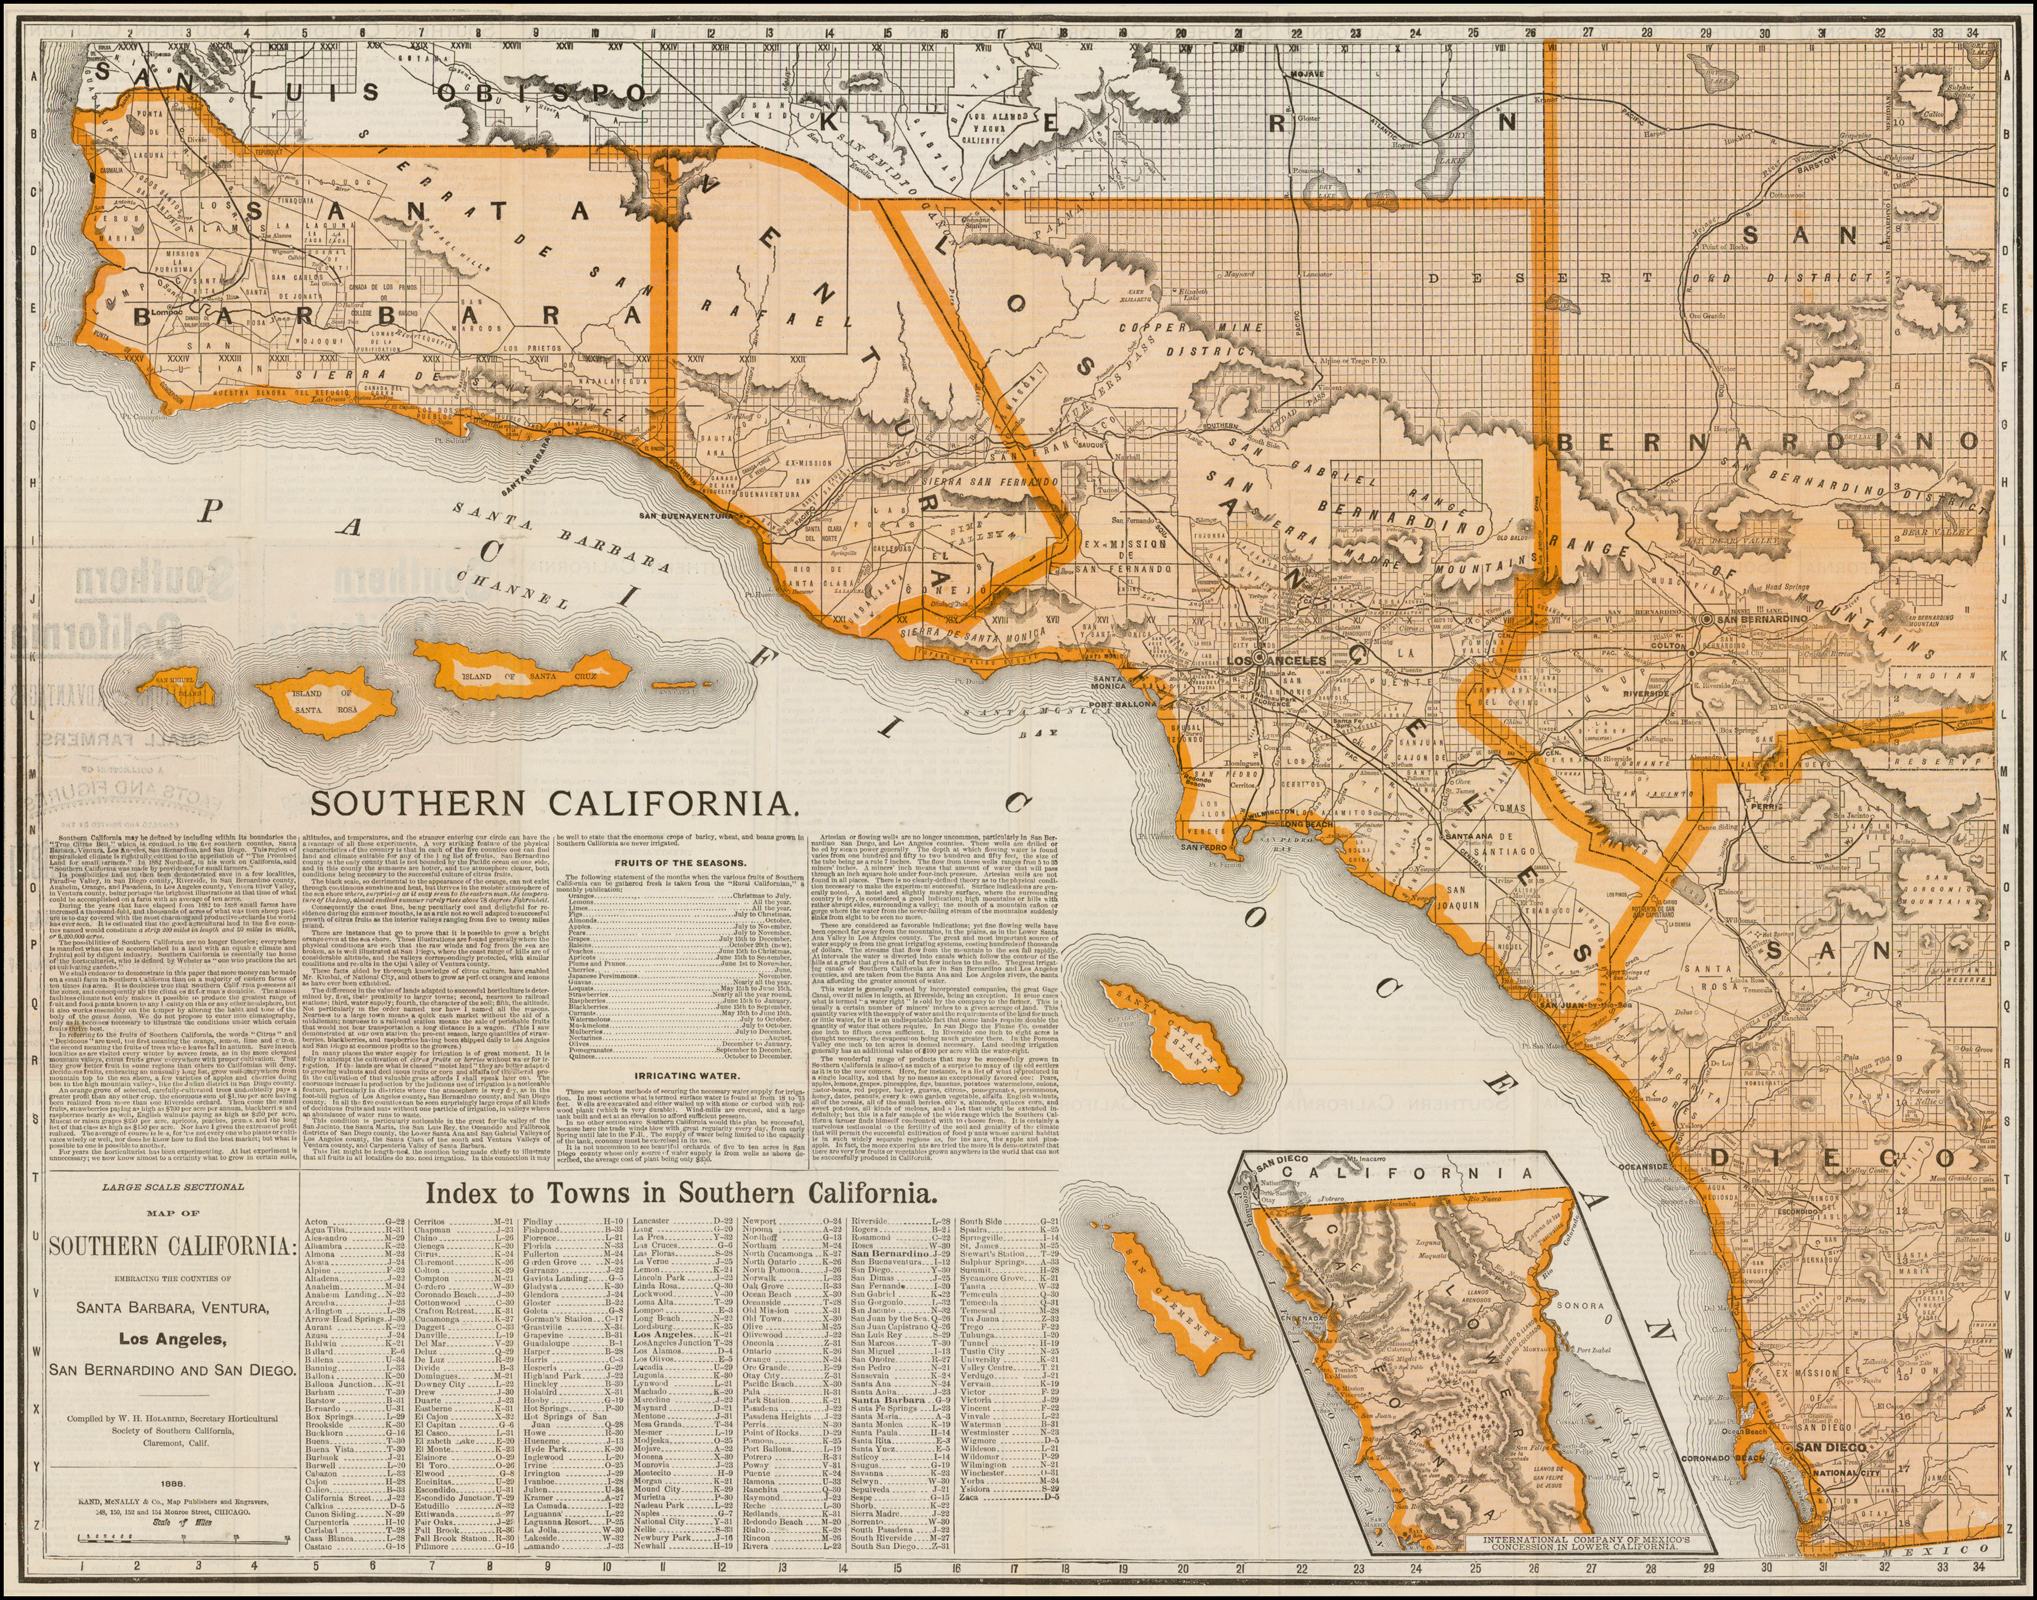 Large Scale Sectional Map Of Southern California: Embracing The - Large Map Of Southern California